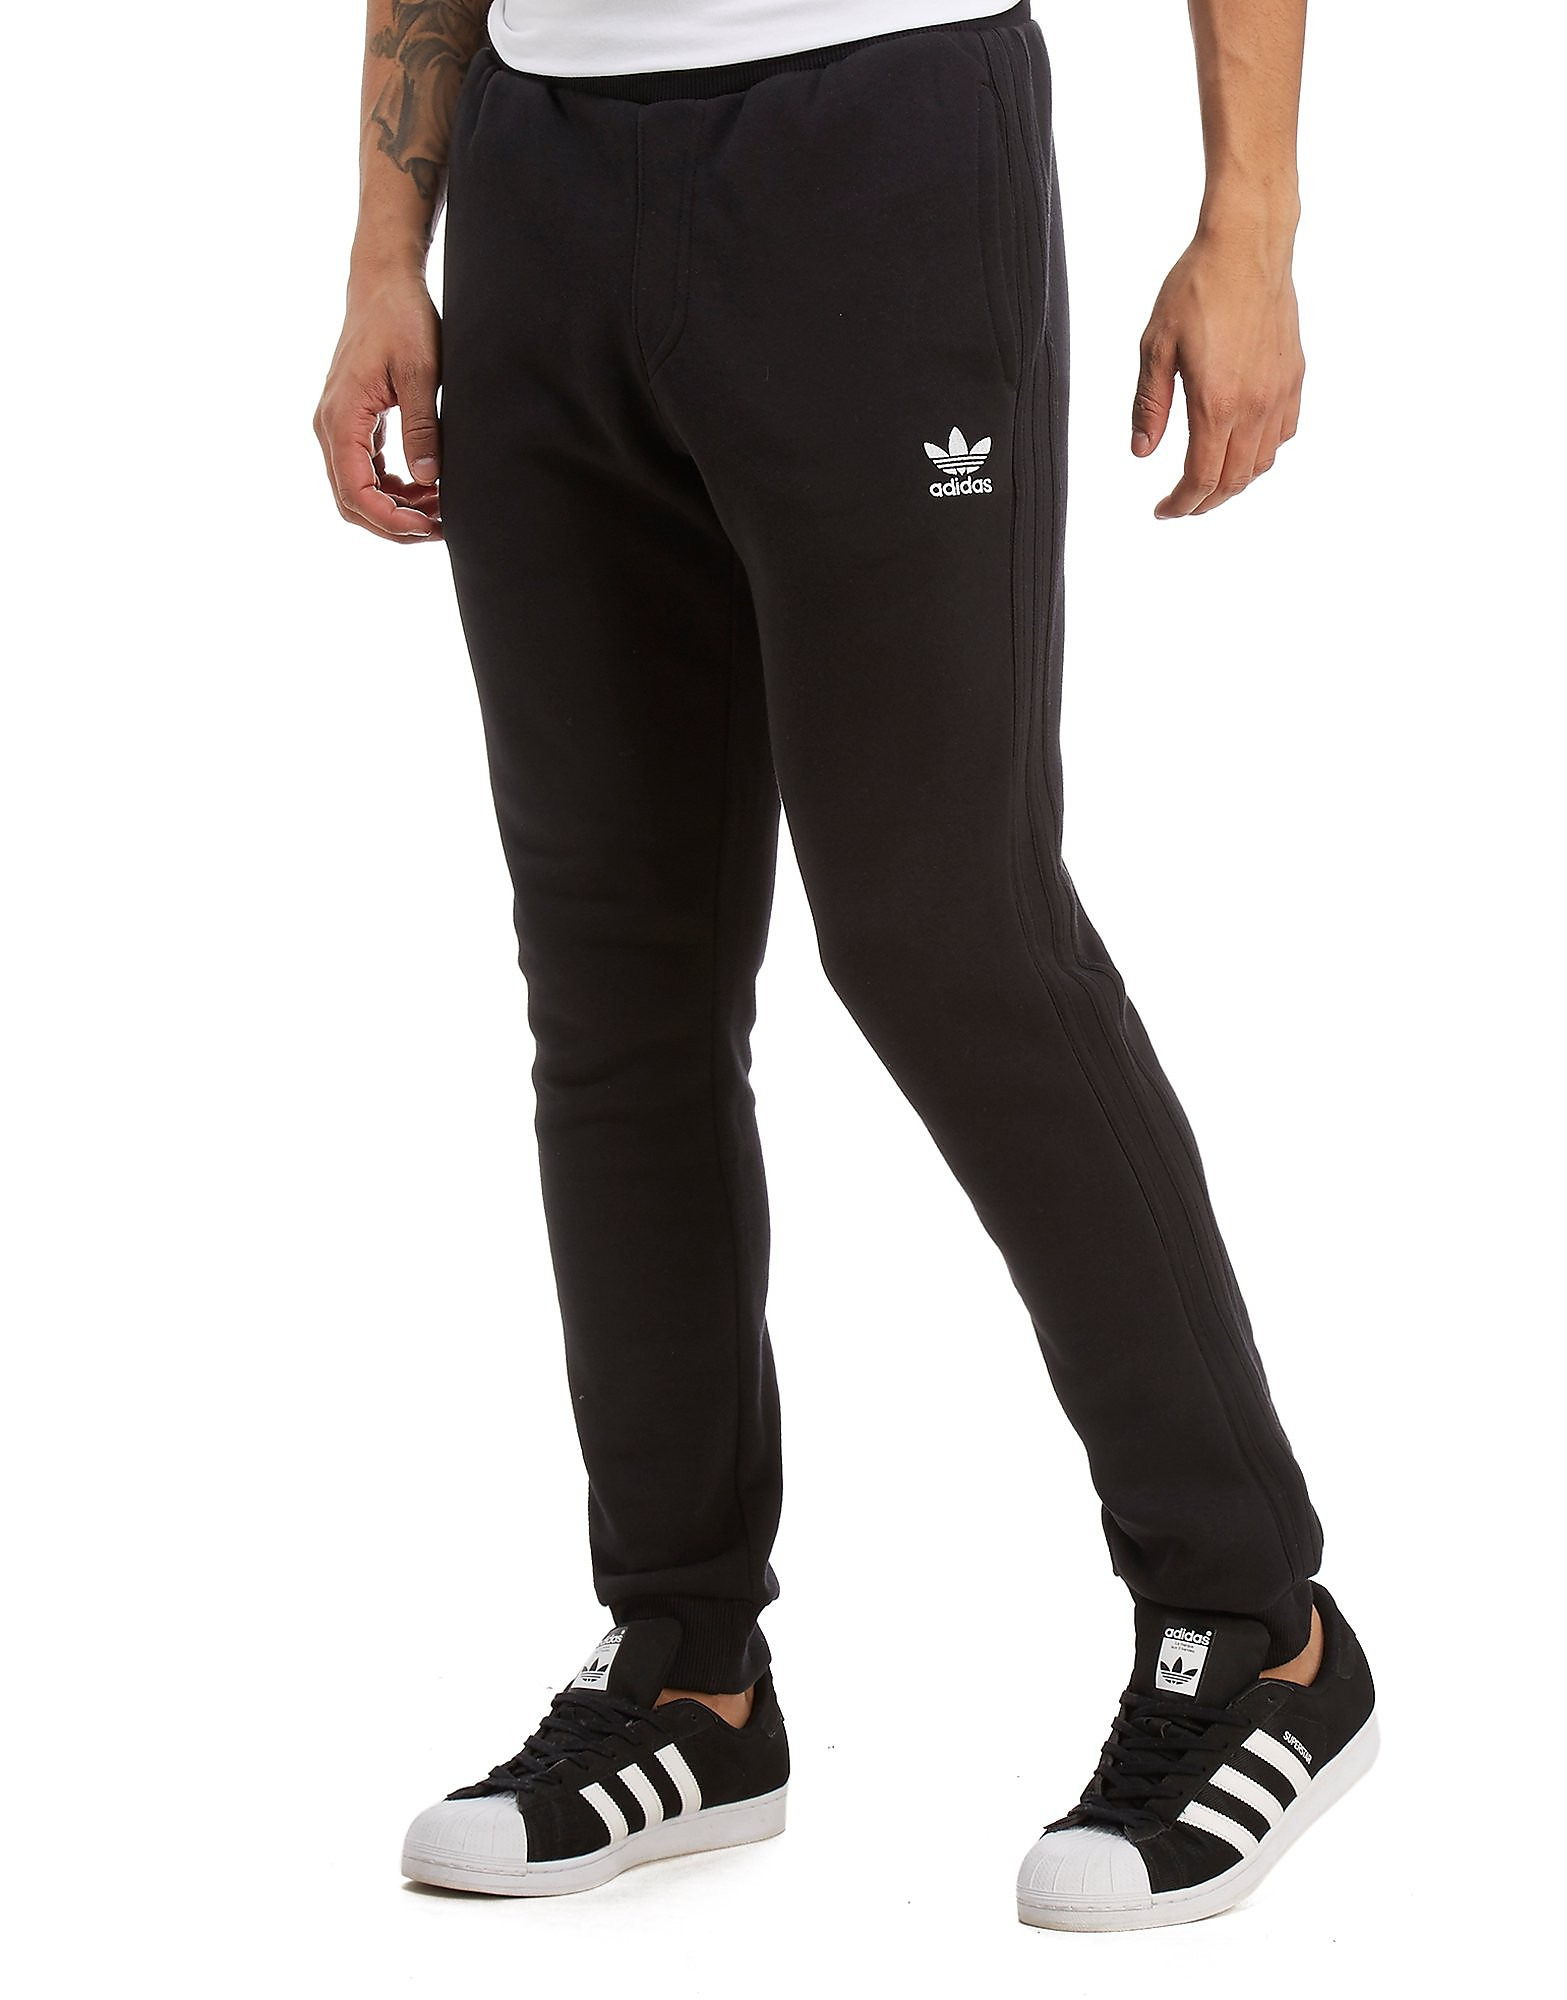 adidas Originals Trefoil Full Length Pants Heren